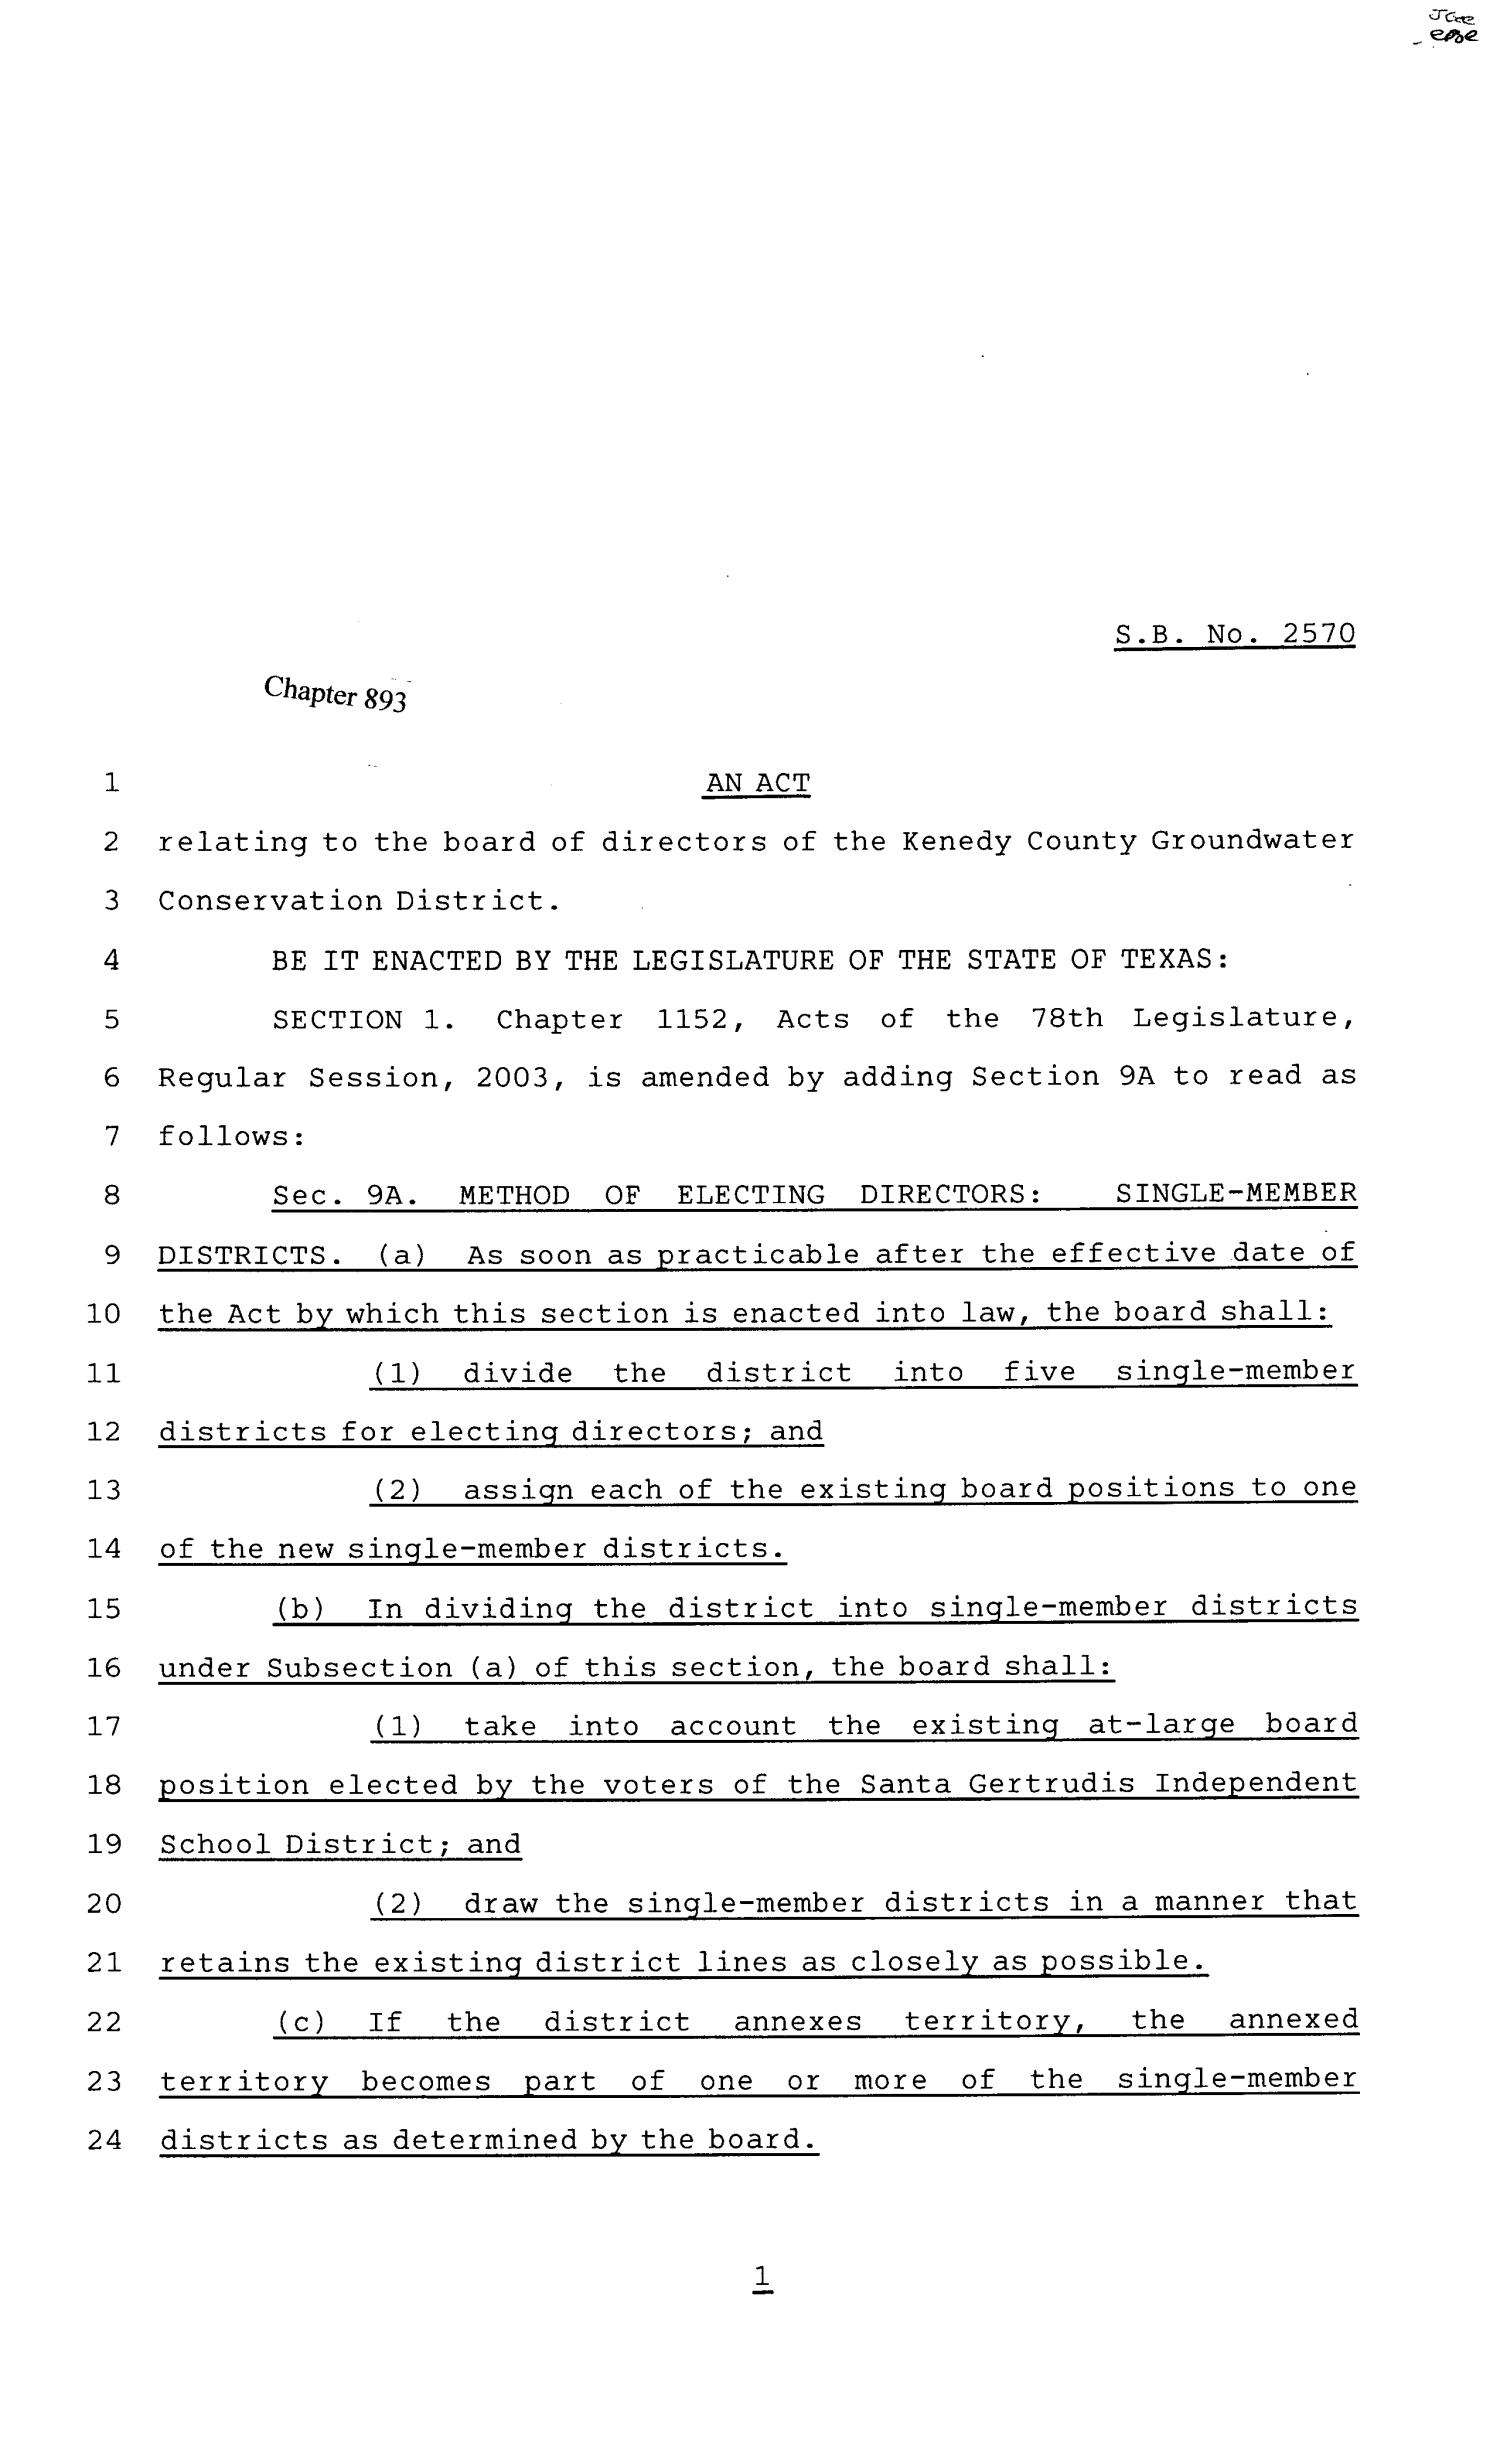 81st Texas Legislature, Senate Bill 2570, Chapter 893                                                                                                      [Sequence #]: 1 of 5